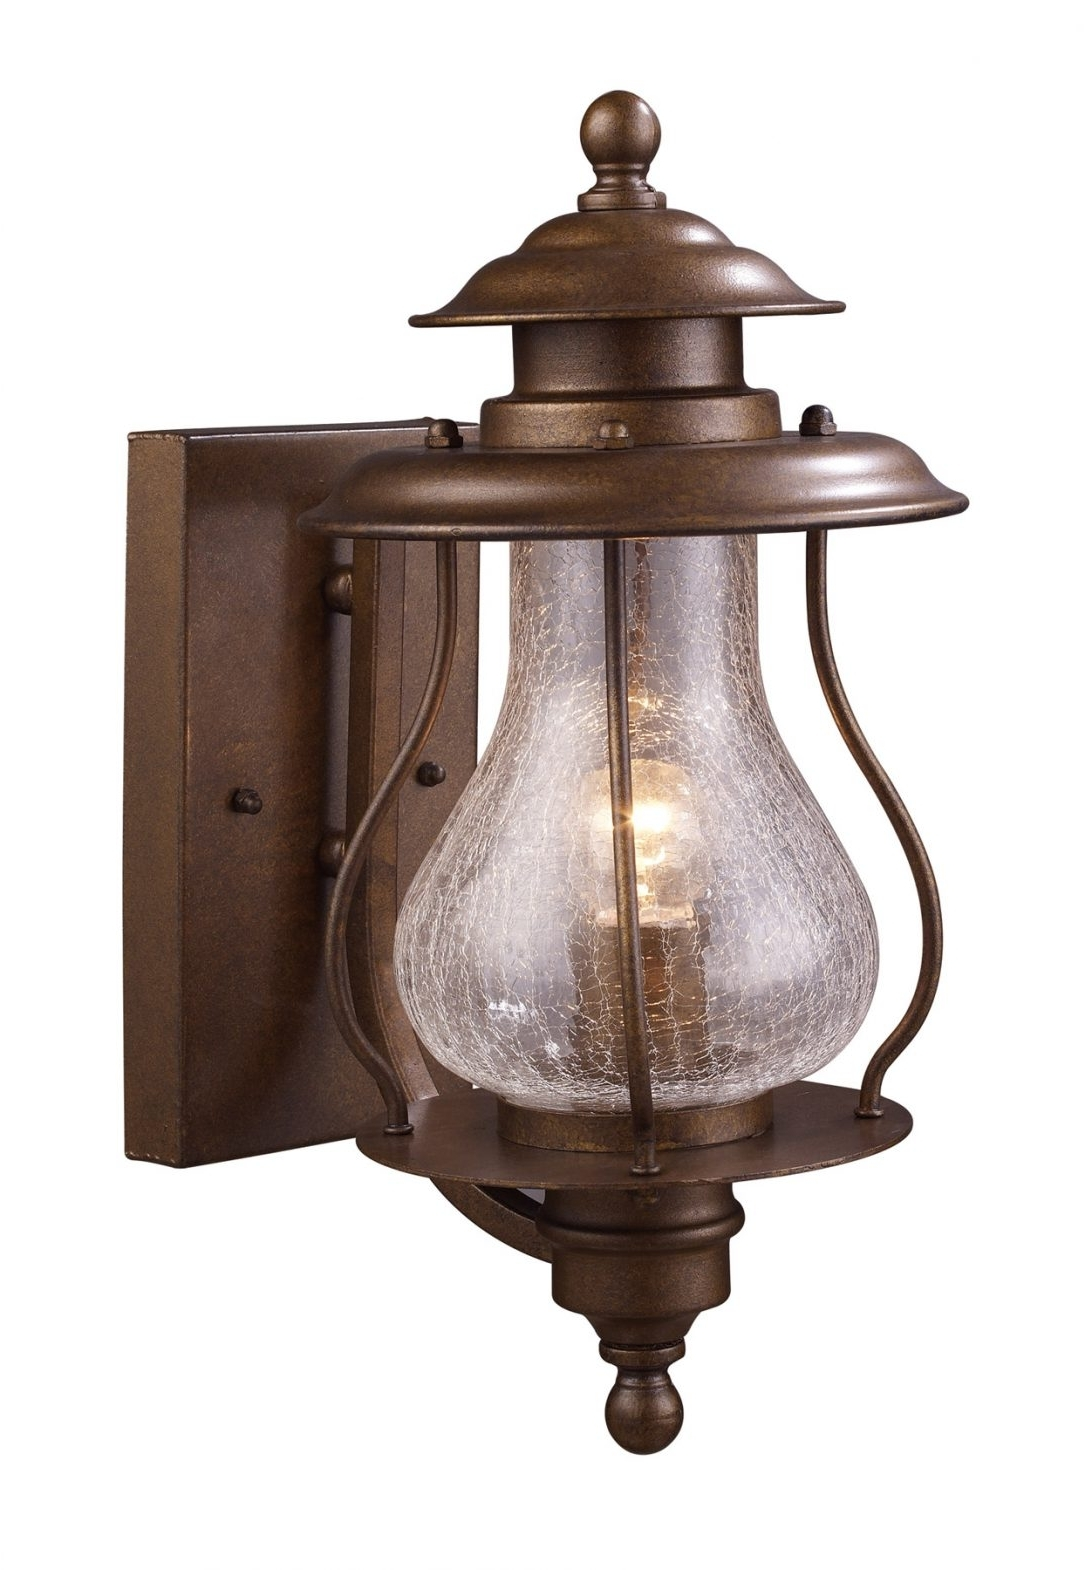 2019 Wall Mounted Outdoor Lanterns With Regard To Wall Mount Porch Lights Patio Exterior Solar Outdoor Lanterns (Gallery 8 of 20)